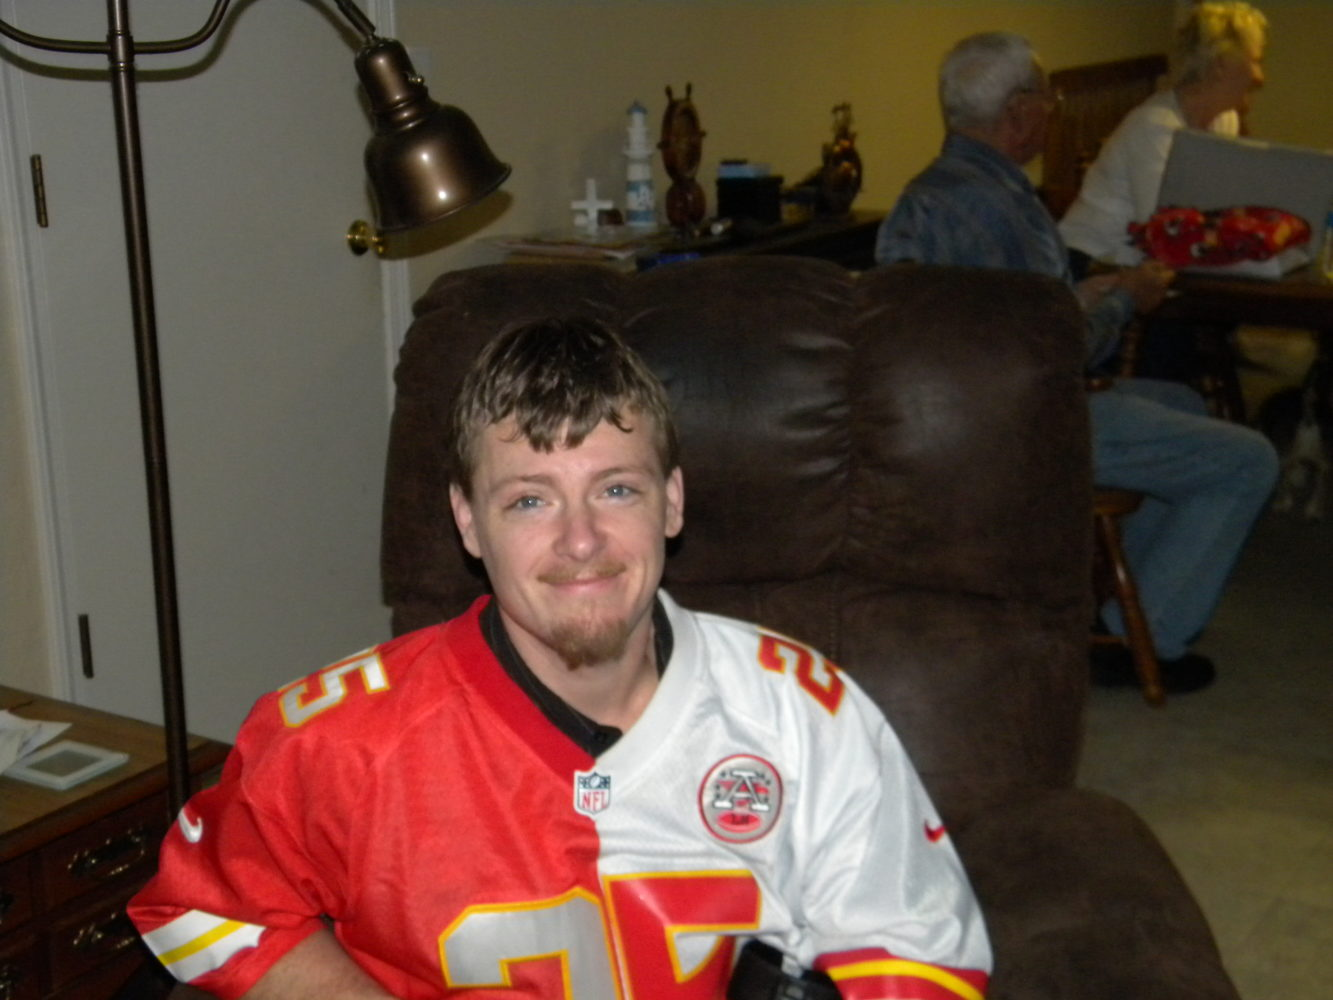 Johnny's Journey: An amputee pushes on, maintains a smile despite reoccurring cancer diagnosis